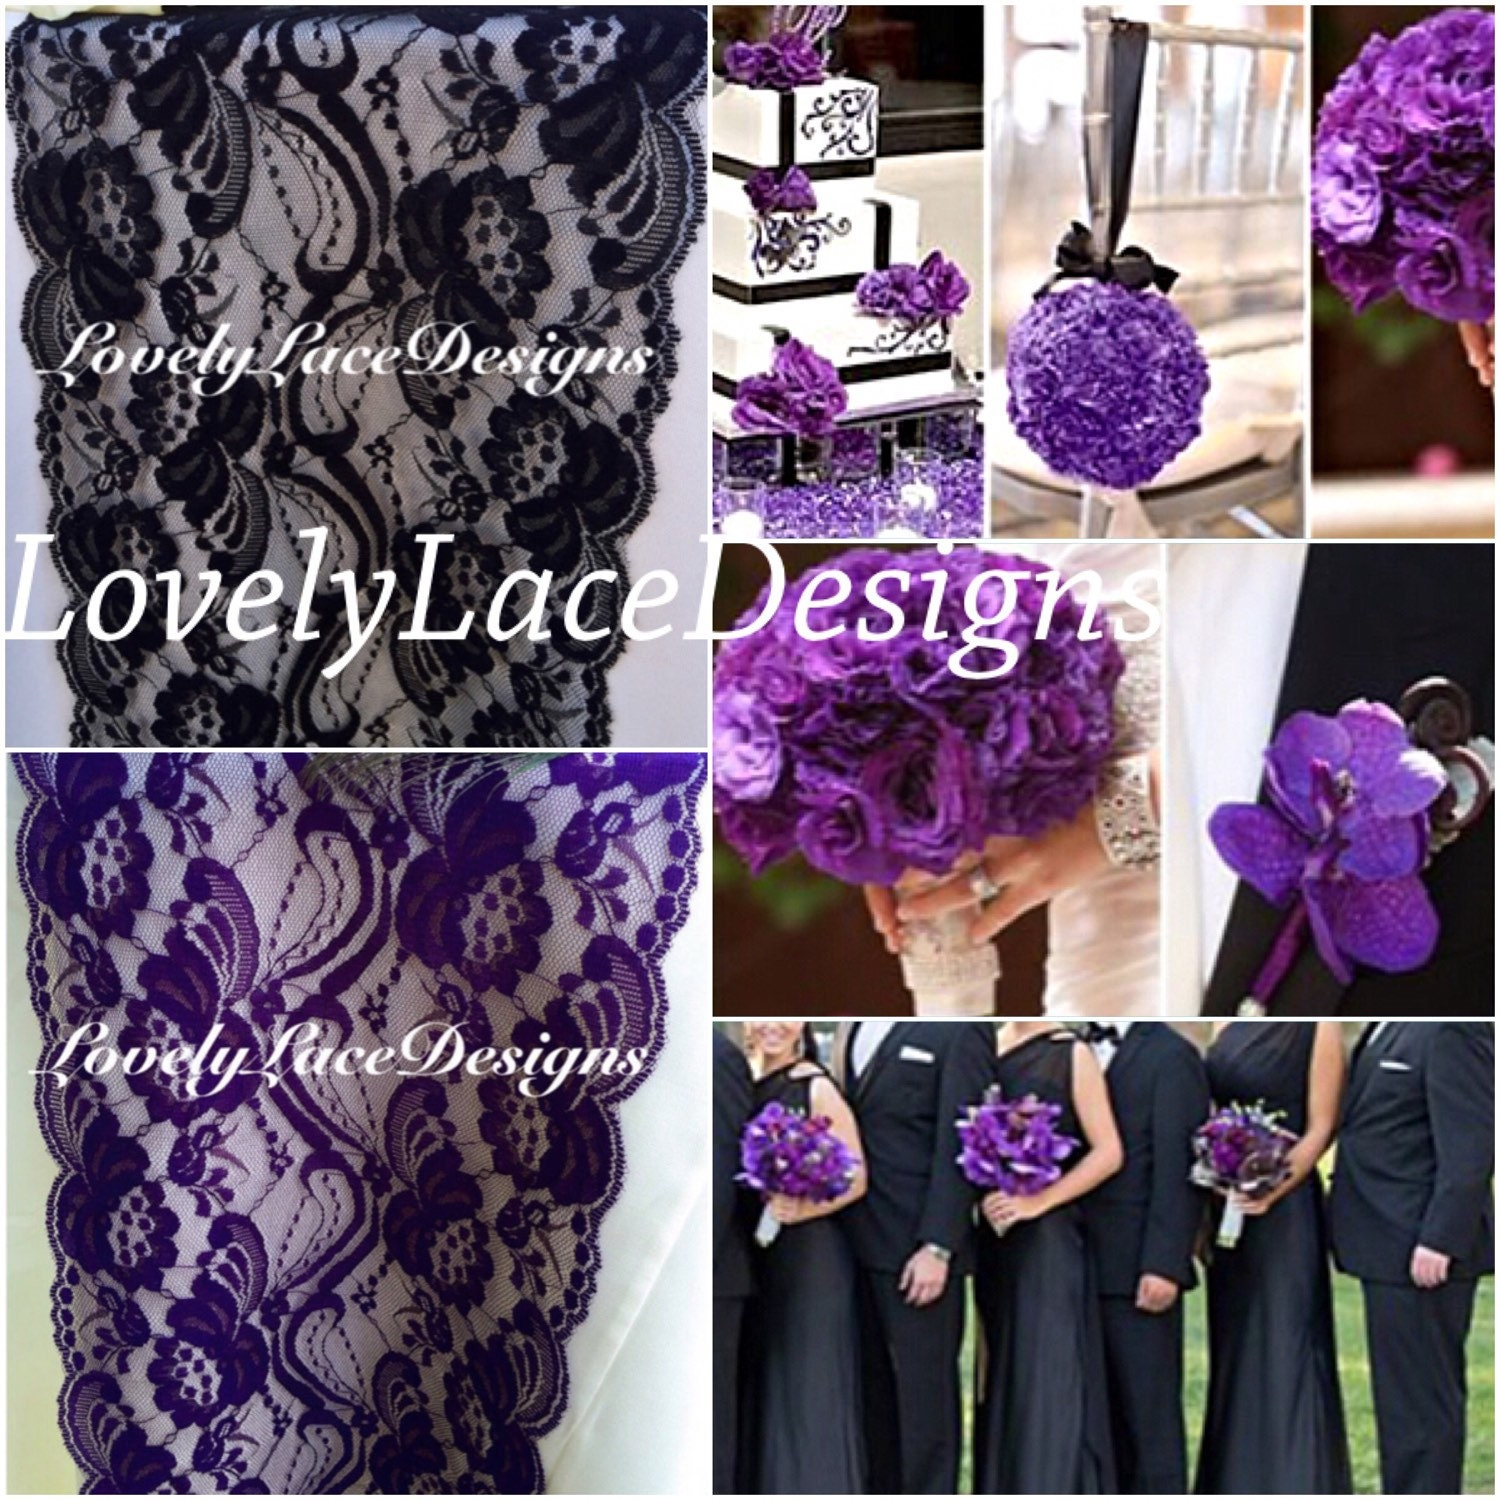 Purple & Black Lace Table Runner,3ft-10ft x 7 Wide/Wedding Decor ...